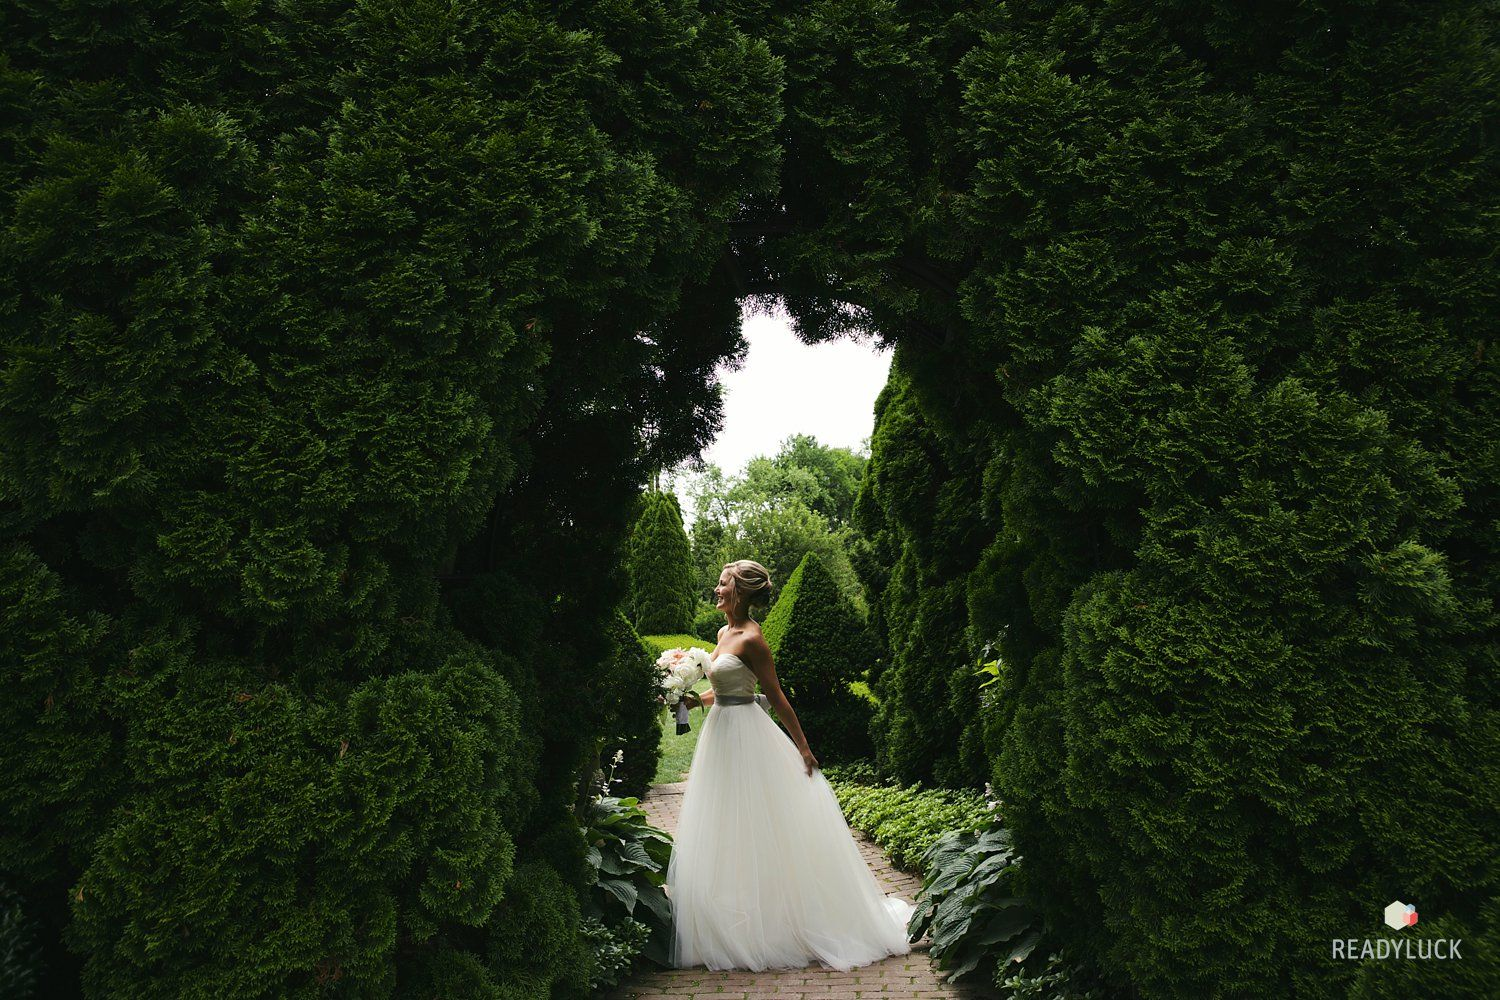 Ladew Topiary Gardens Photographed By